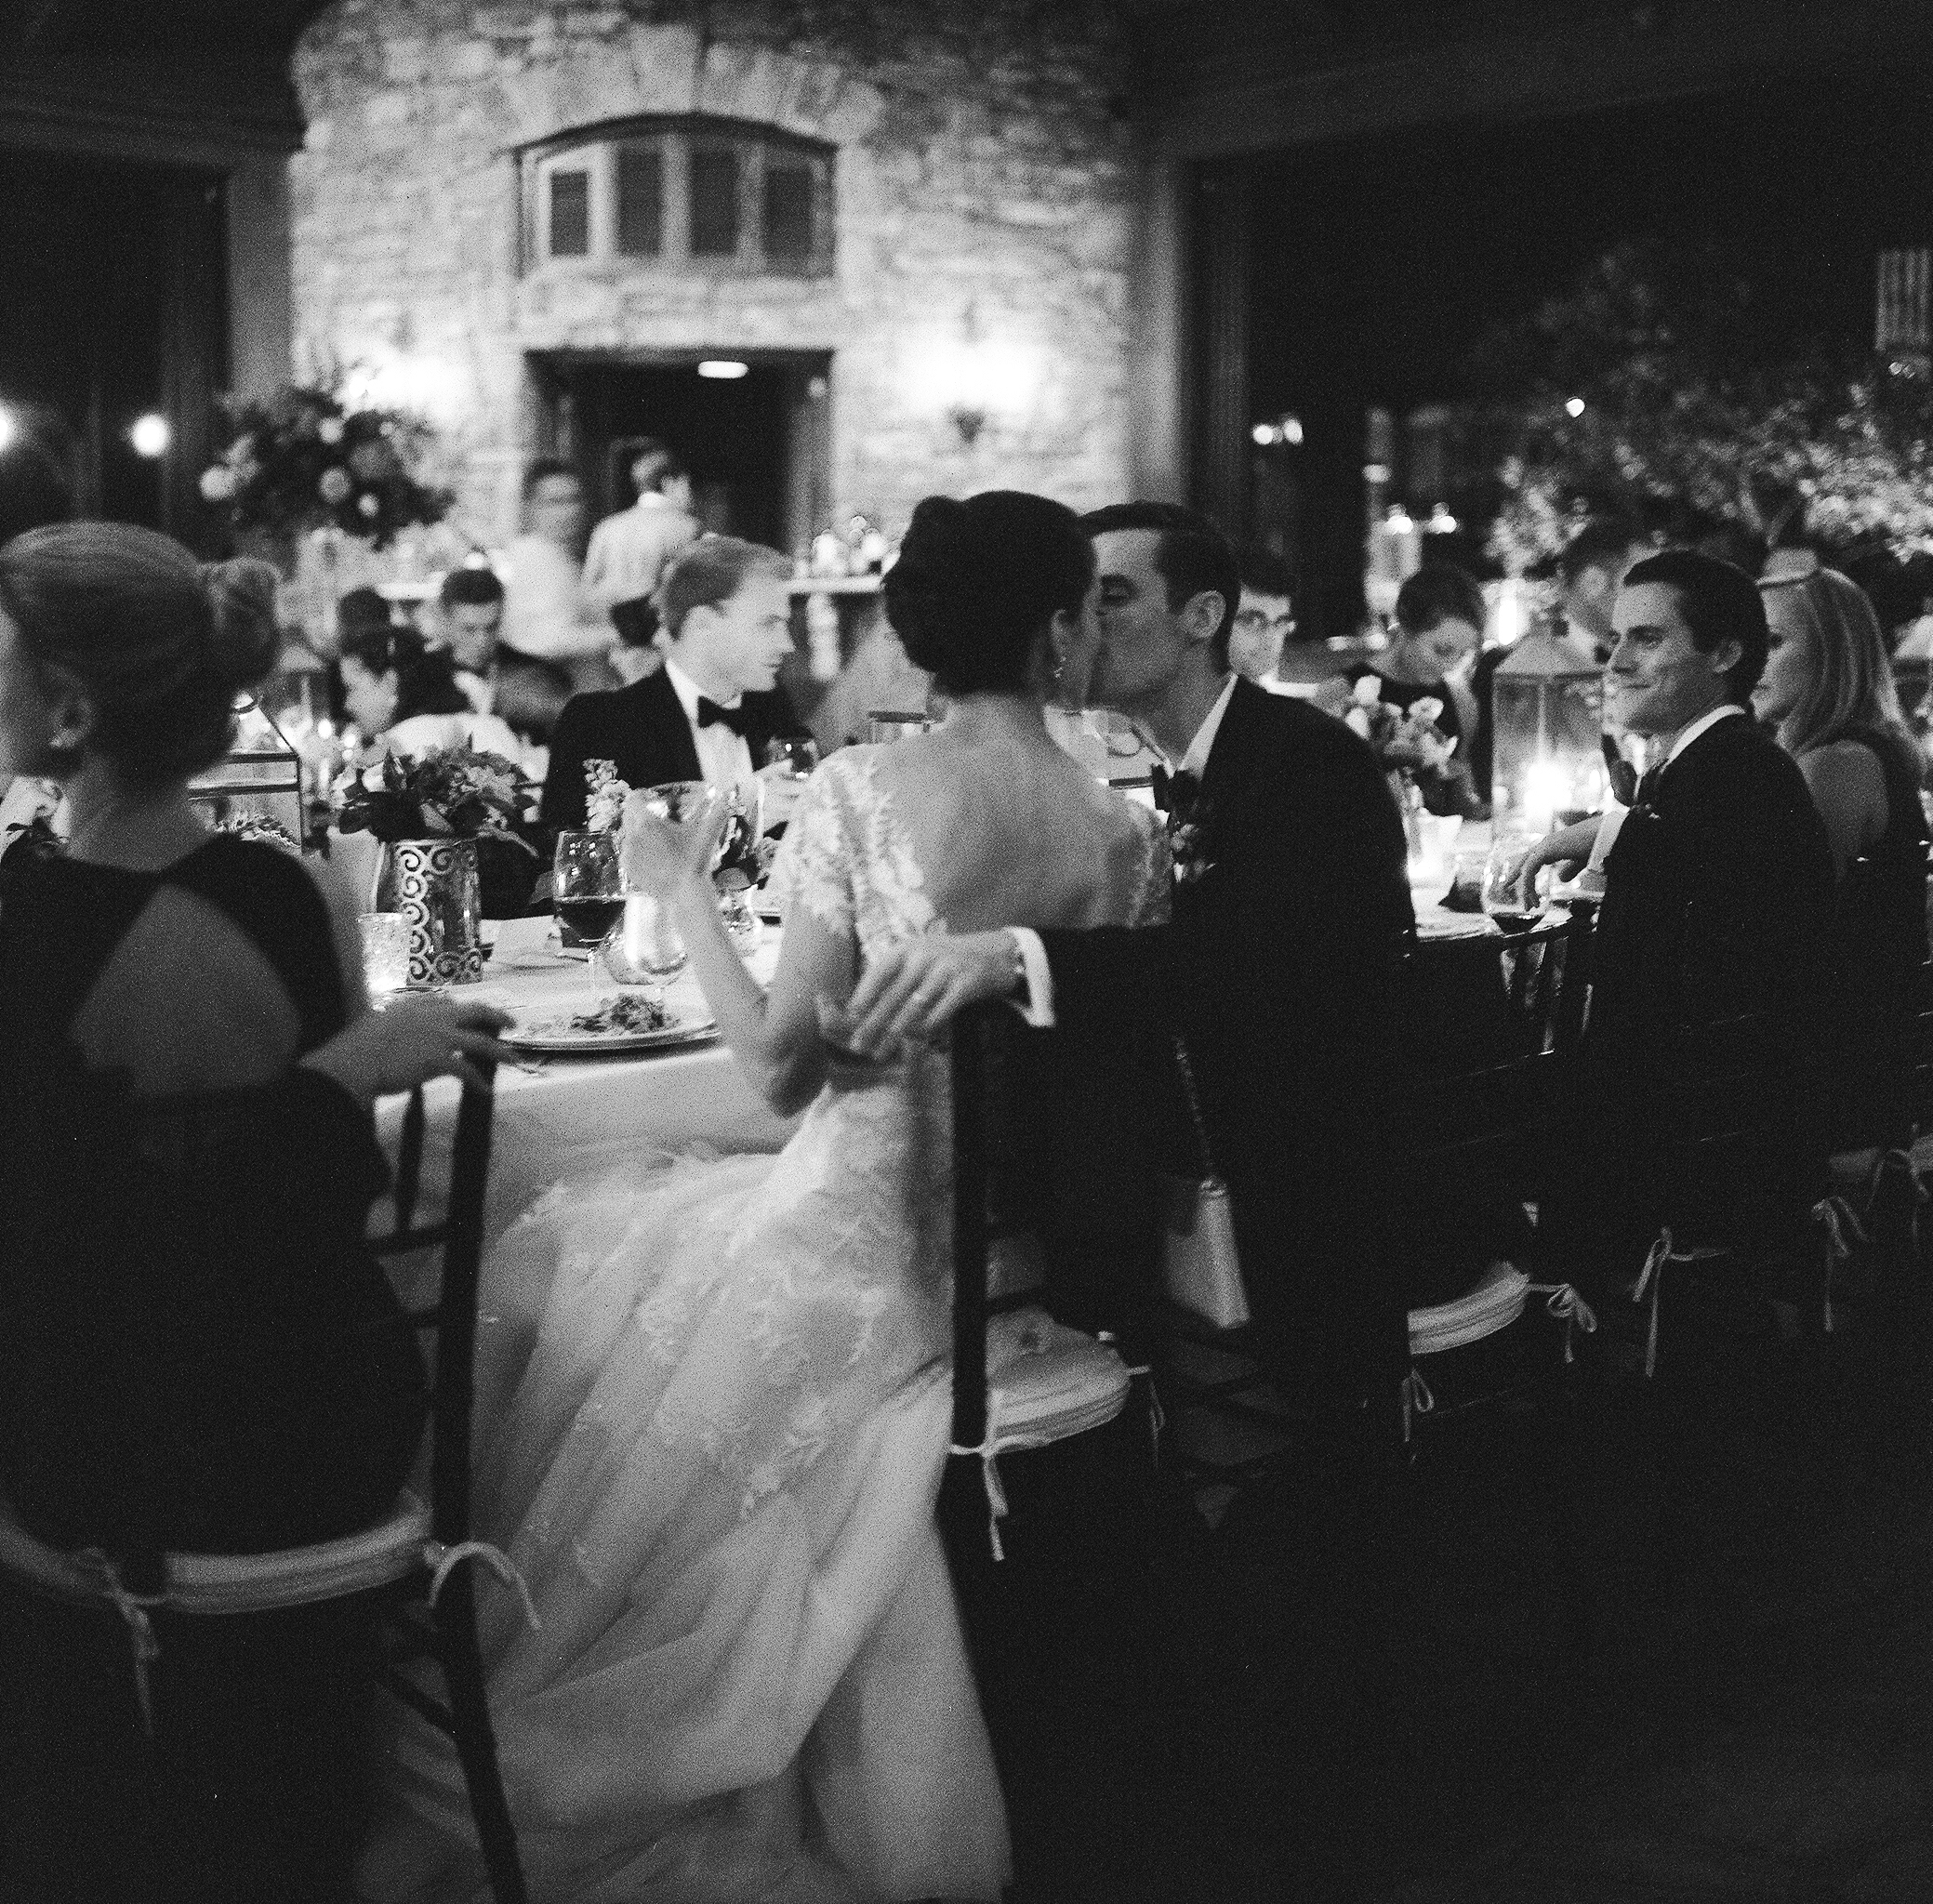 Charleston Wedding Photographers Virgil Bunao Tyler and Peter | The Farm at Old Edwards Inn Wedding in Highlands, North Carolina | Part Two